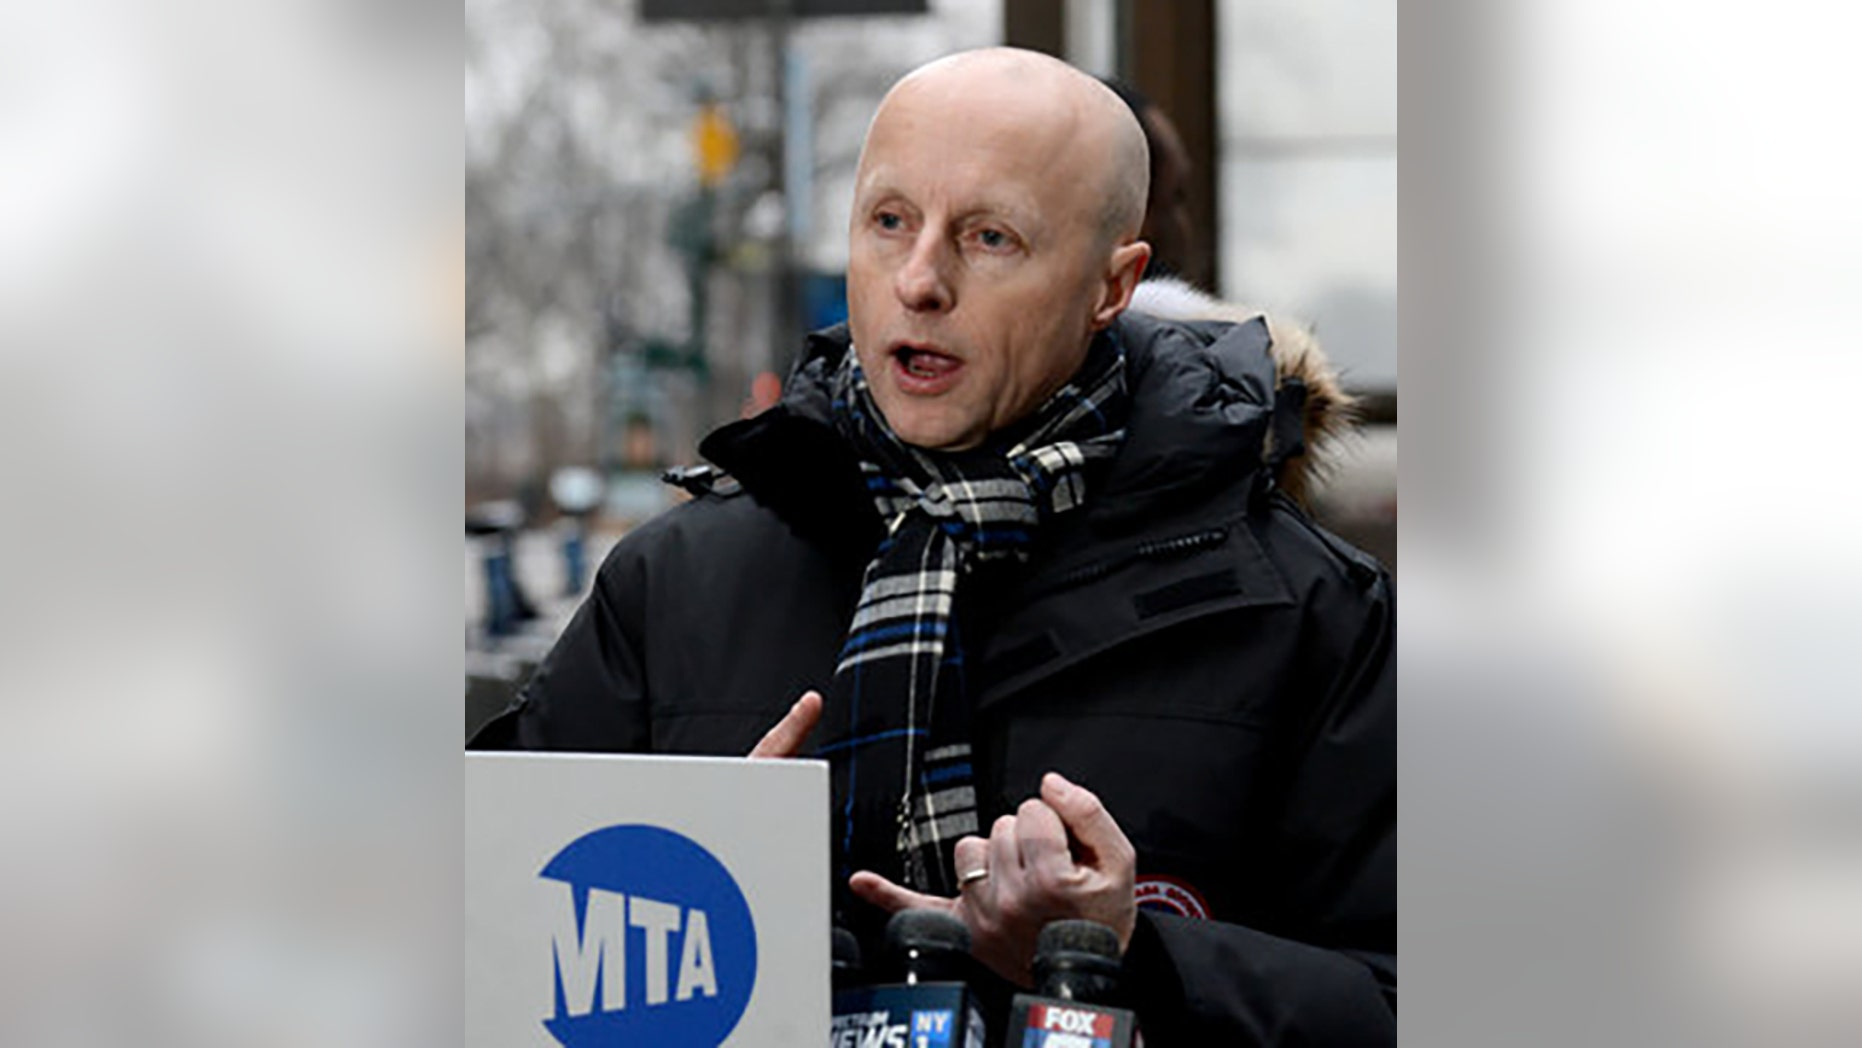 Andy Byford arrives at the Bowling Green Station to begin his first day as MTA New York City Transit President on Tue., January 16, 2018. Byford was only the 21st-highest earner in the MTA last year.